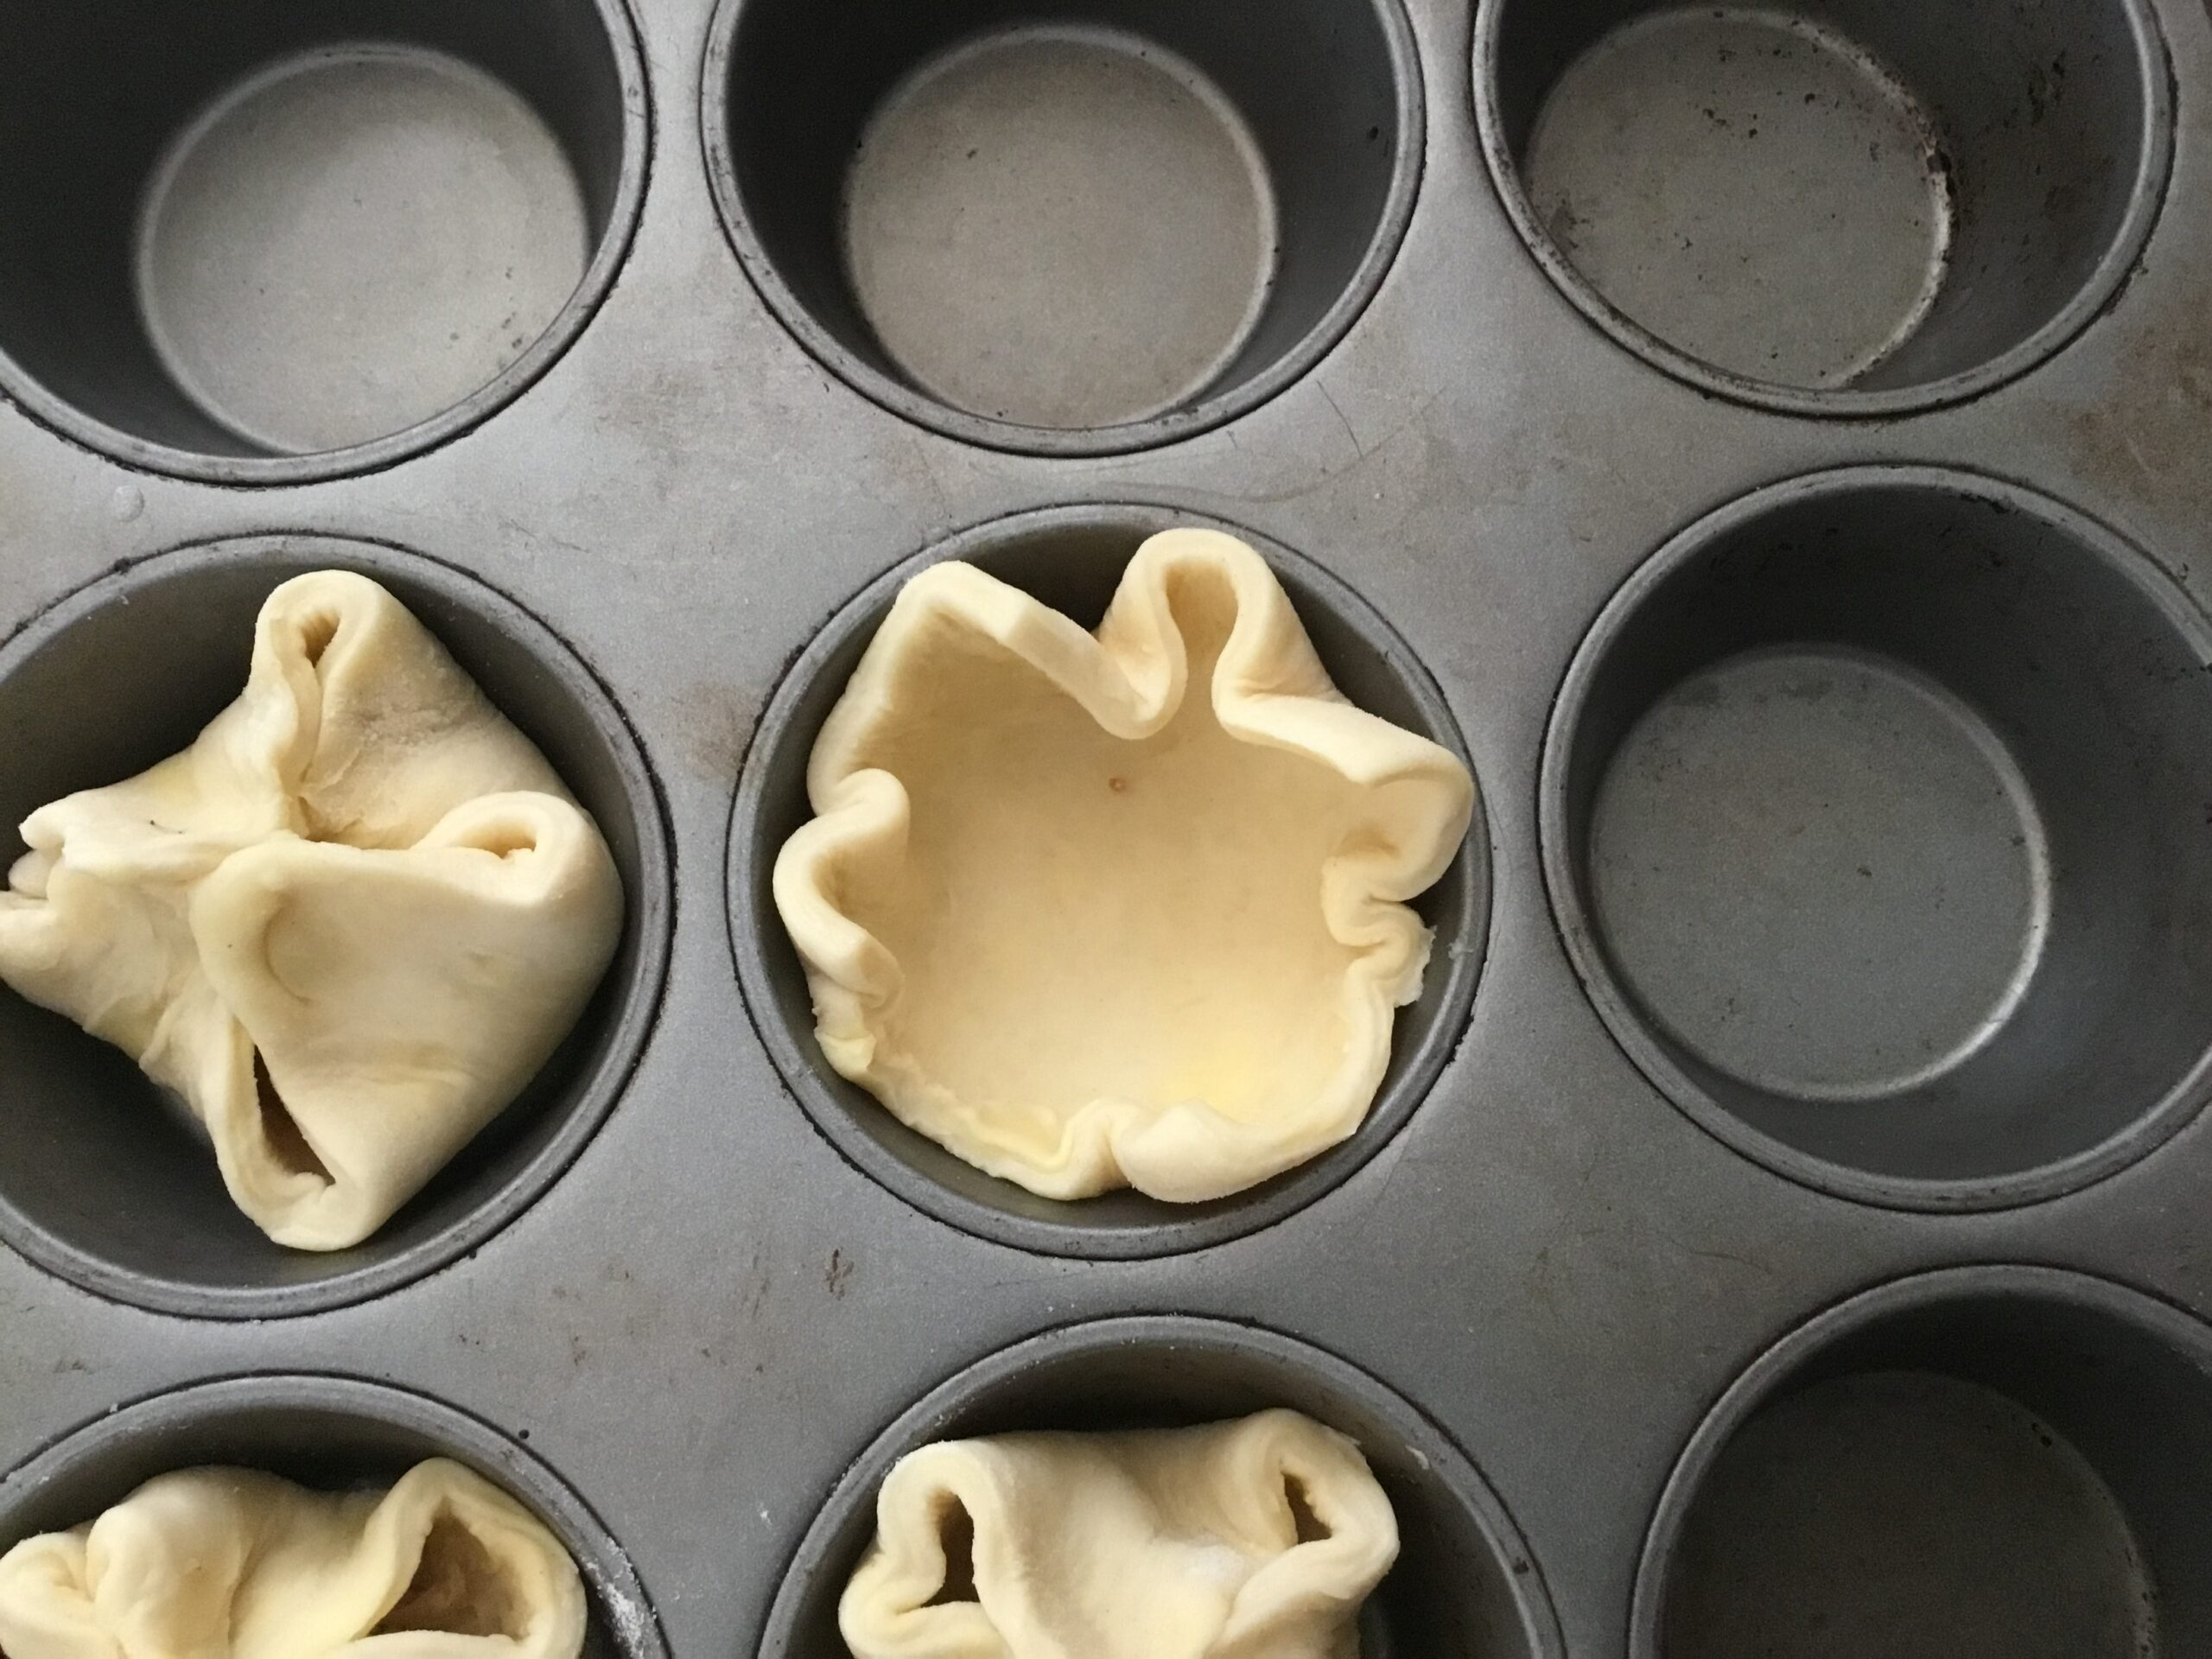 Pastry in muffin tins